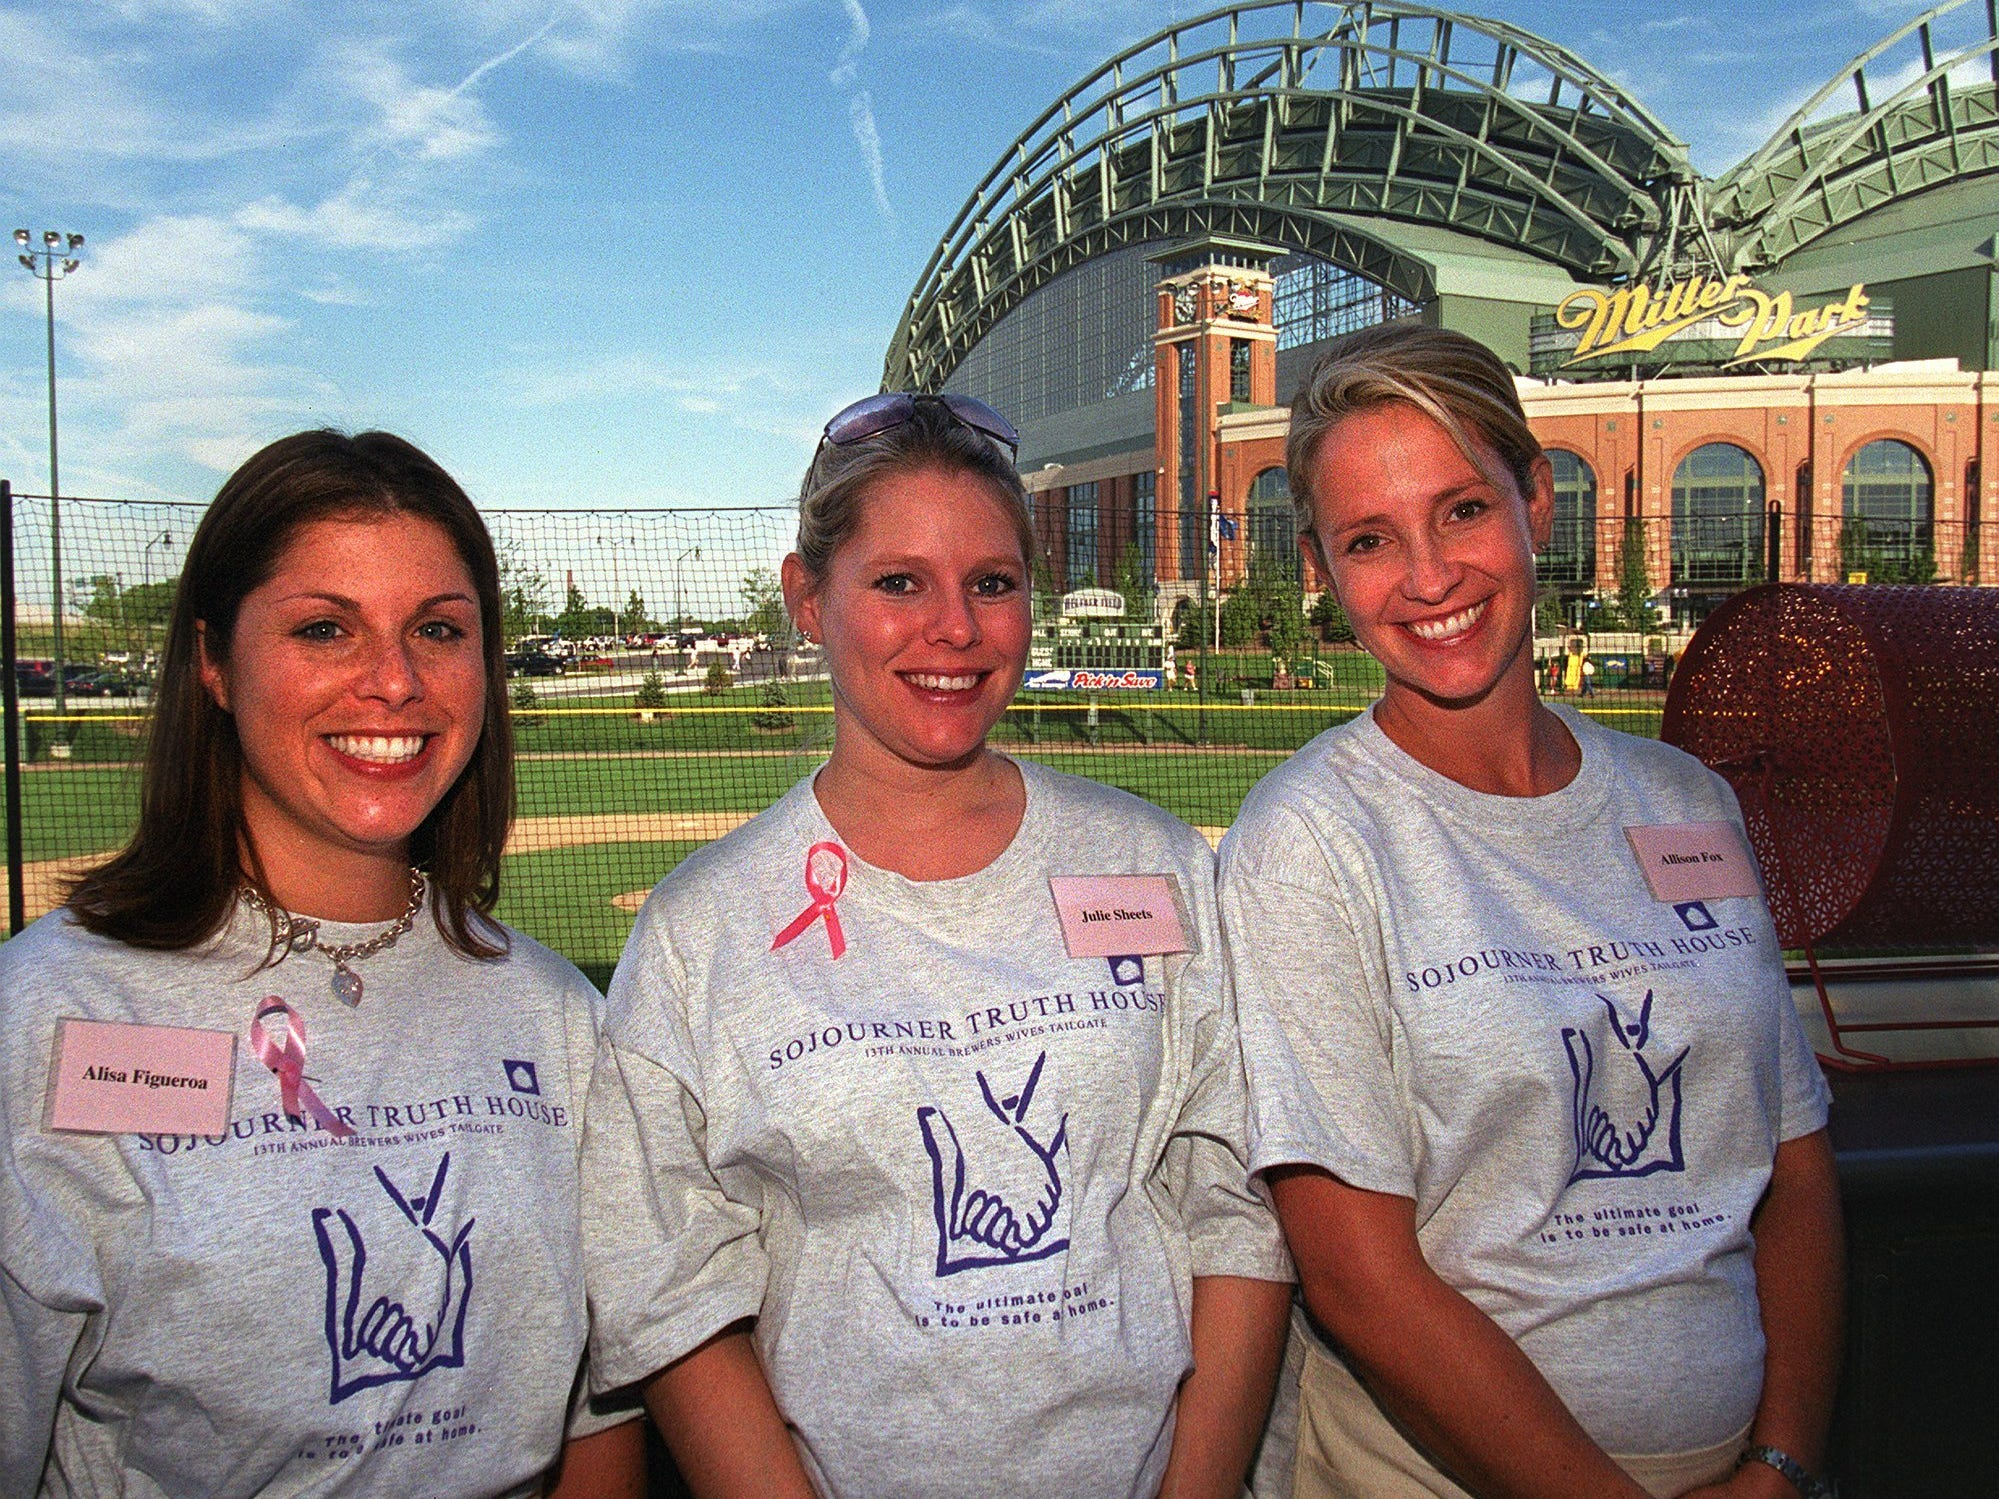 Alisa Figueroa, left, Julie Sheets, center, and Allison Fox appear at a benefit for the Sojourner Truth House held at Helfaer Field Friday, July 12, 2002, in Milwaukee.